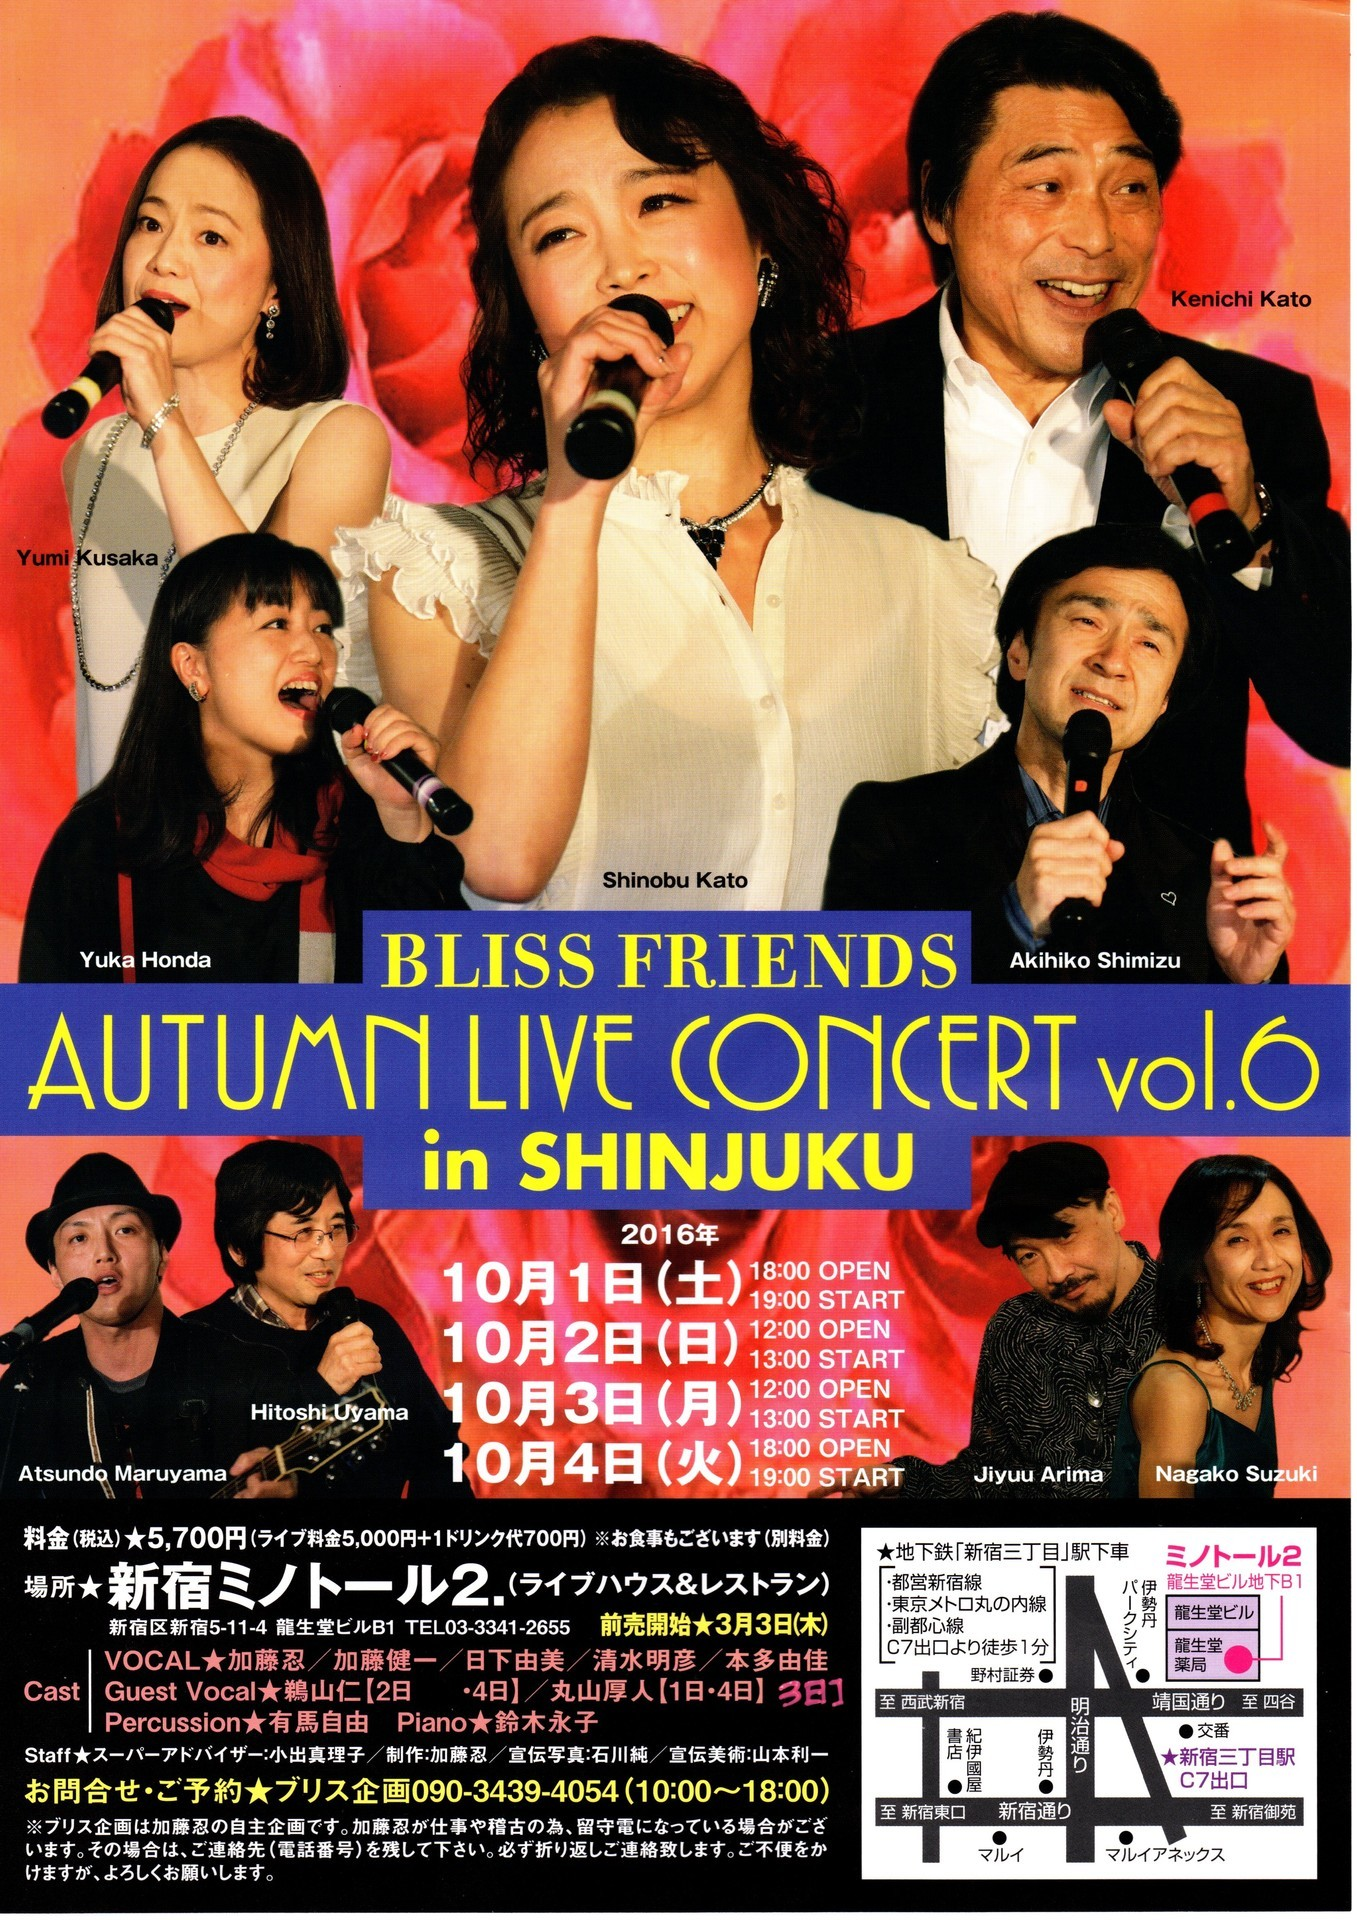 autumn live concert vol.6.jpg